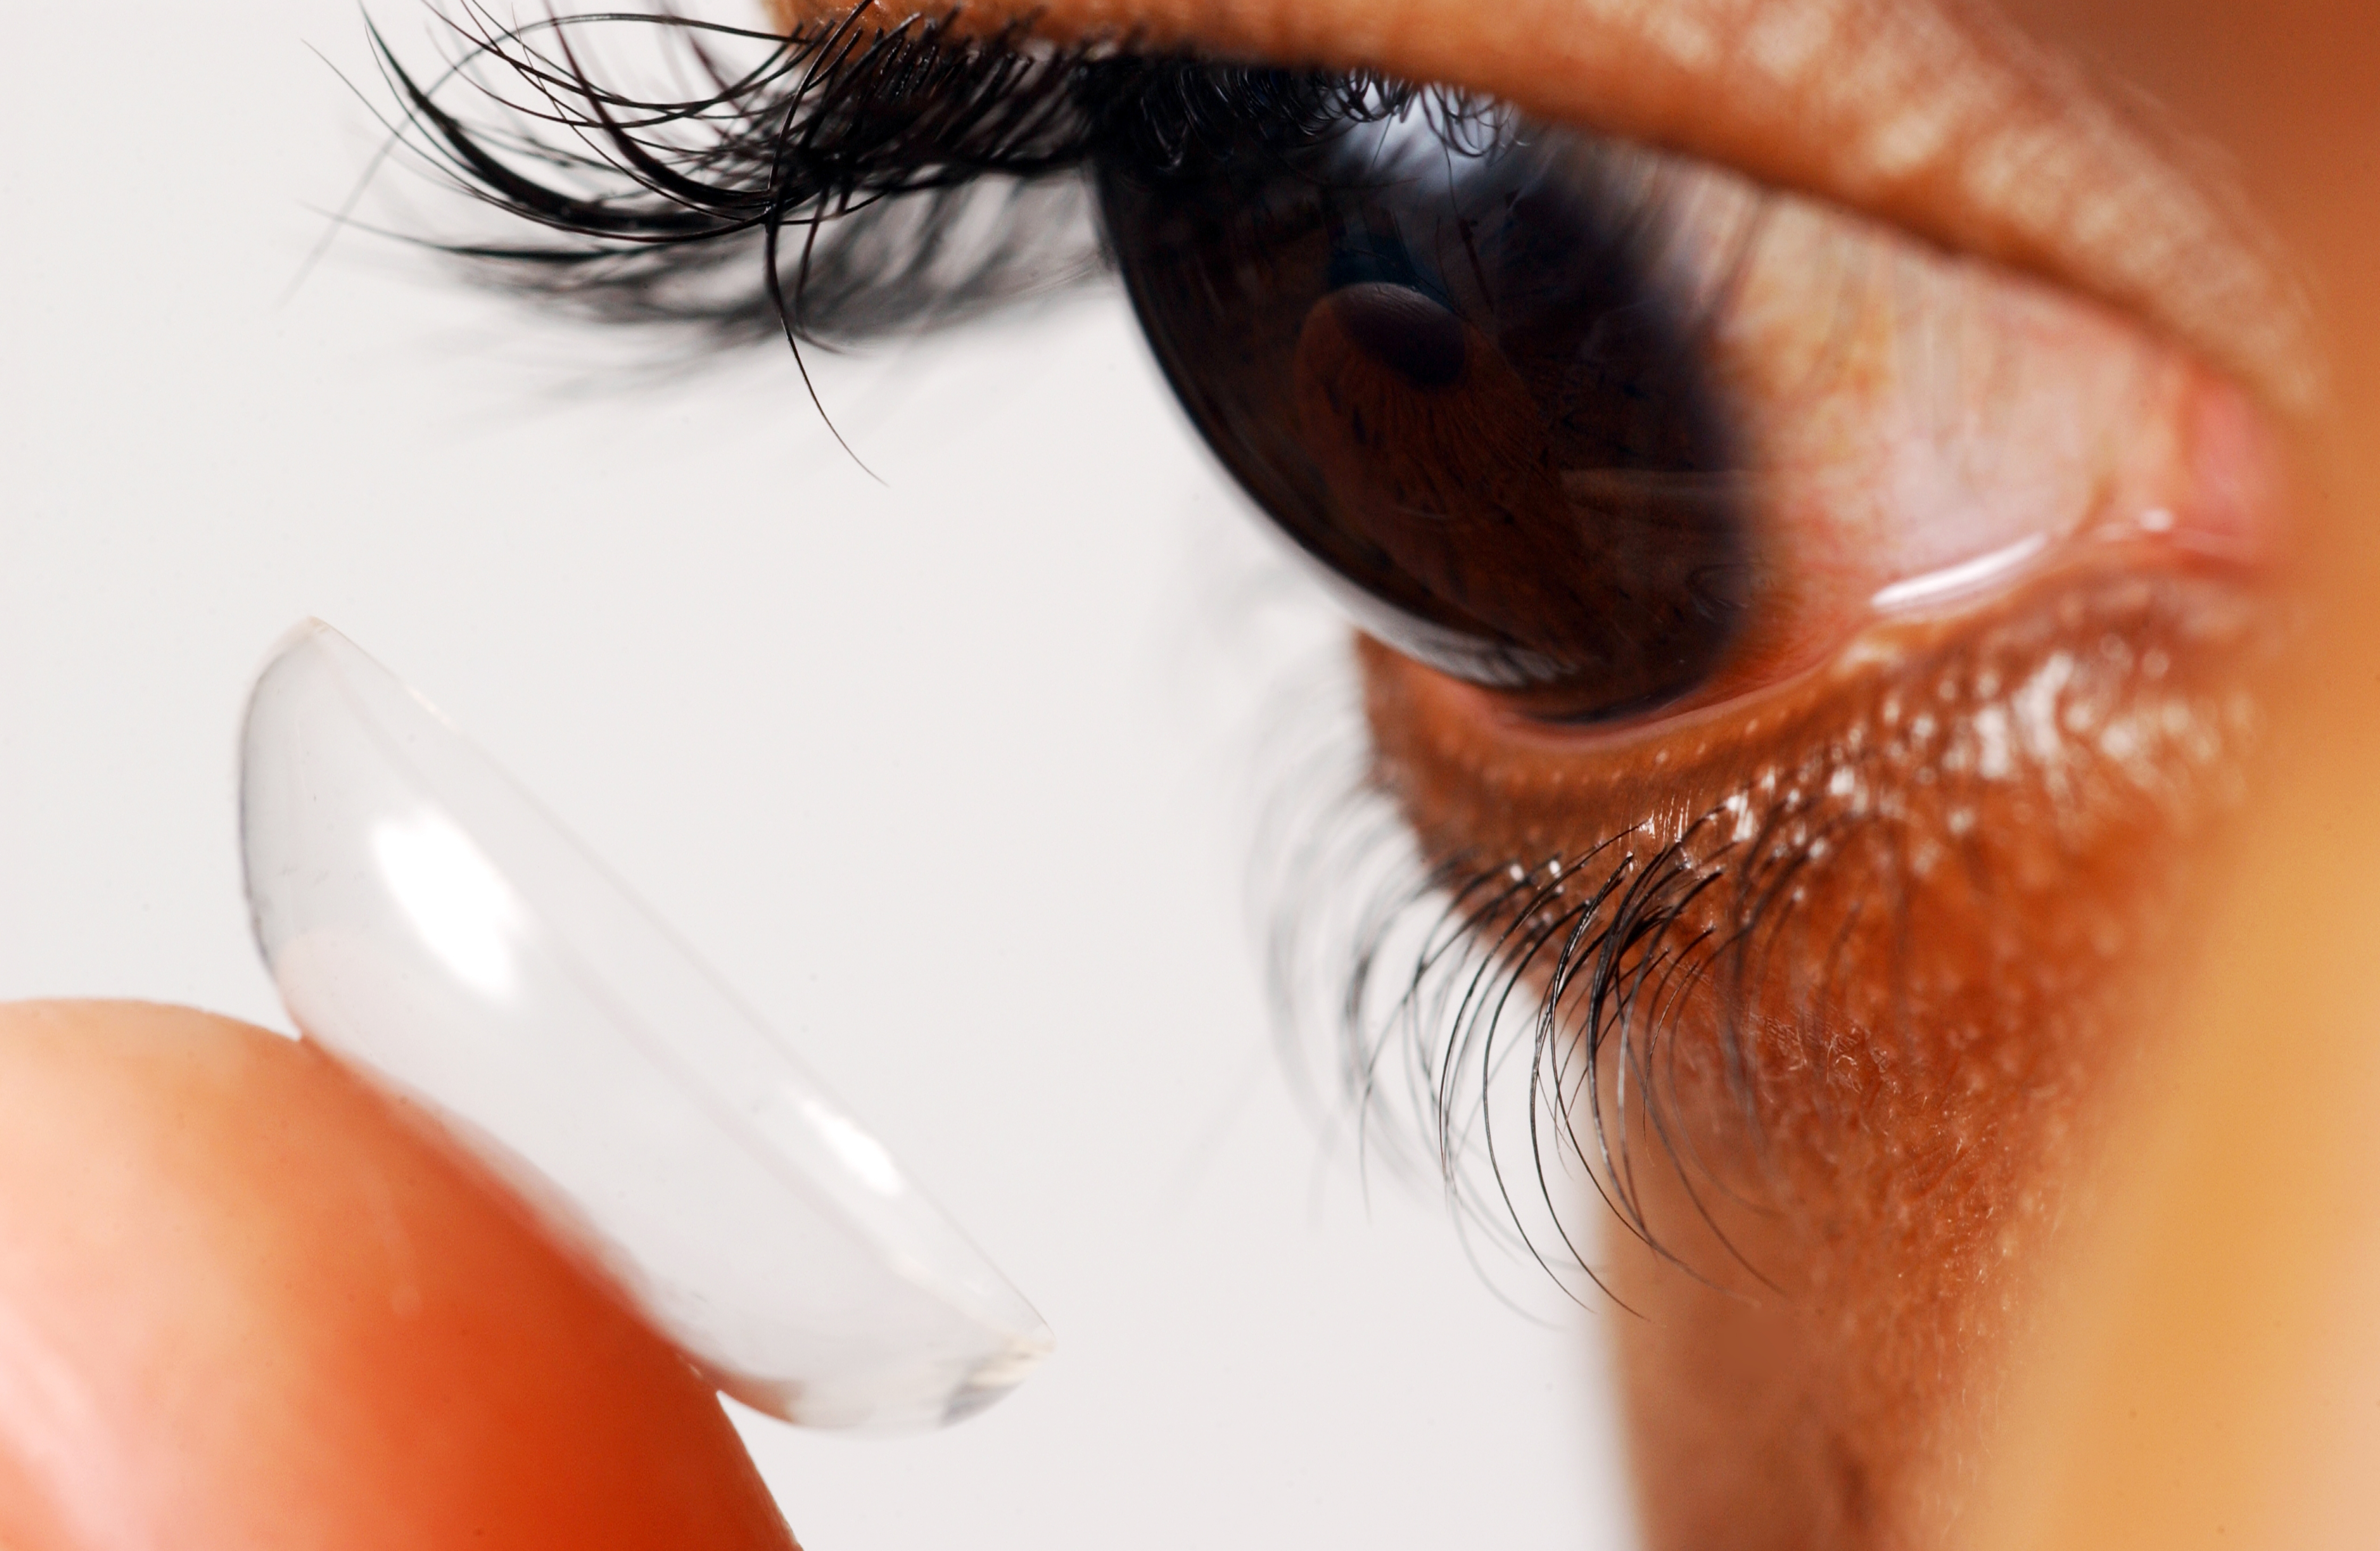 Doctors removed 27 contact lenses from a womans eye advise